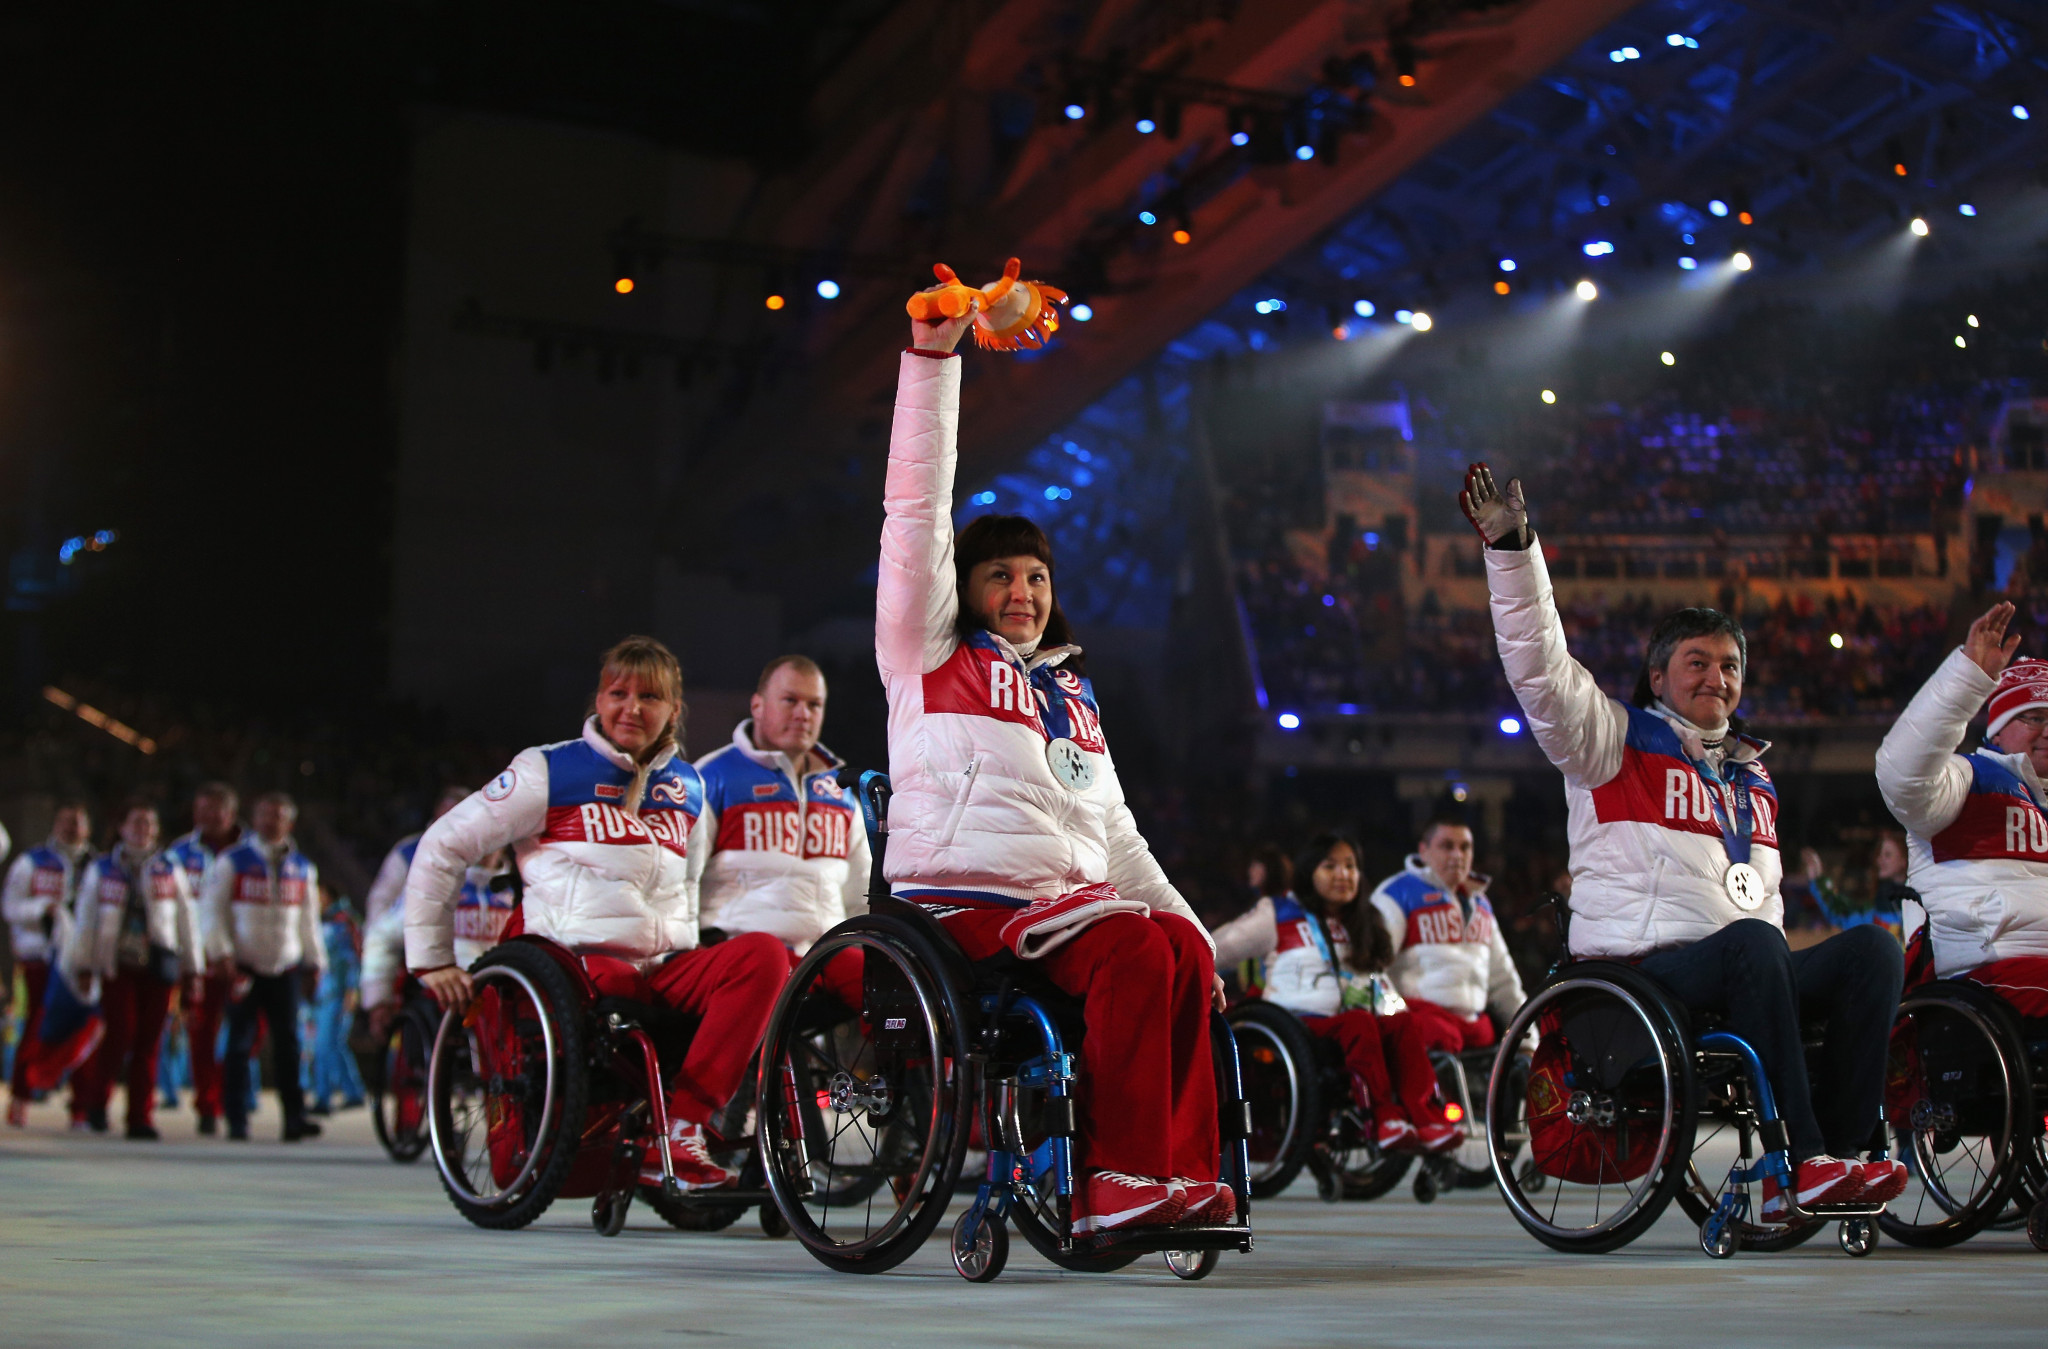 Russian athletes could be made to compete as neutrals at the Pyeongchang 2018 Paralympics ©Getty Images